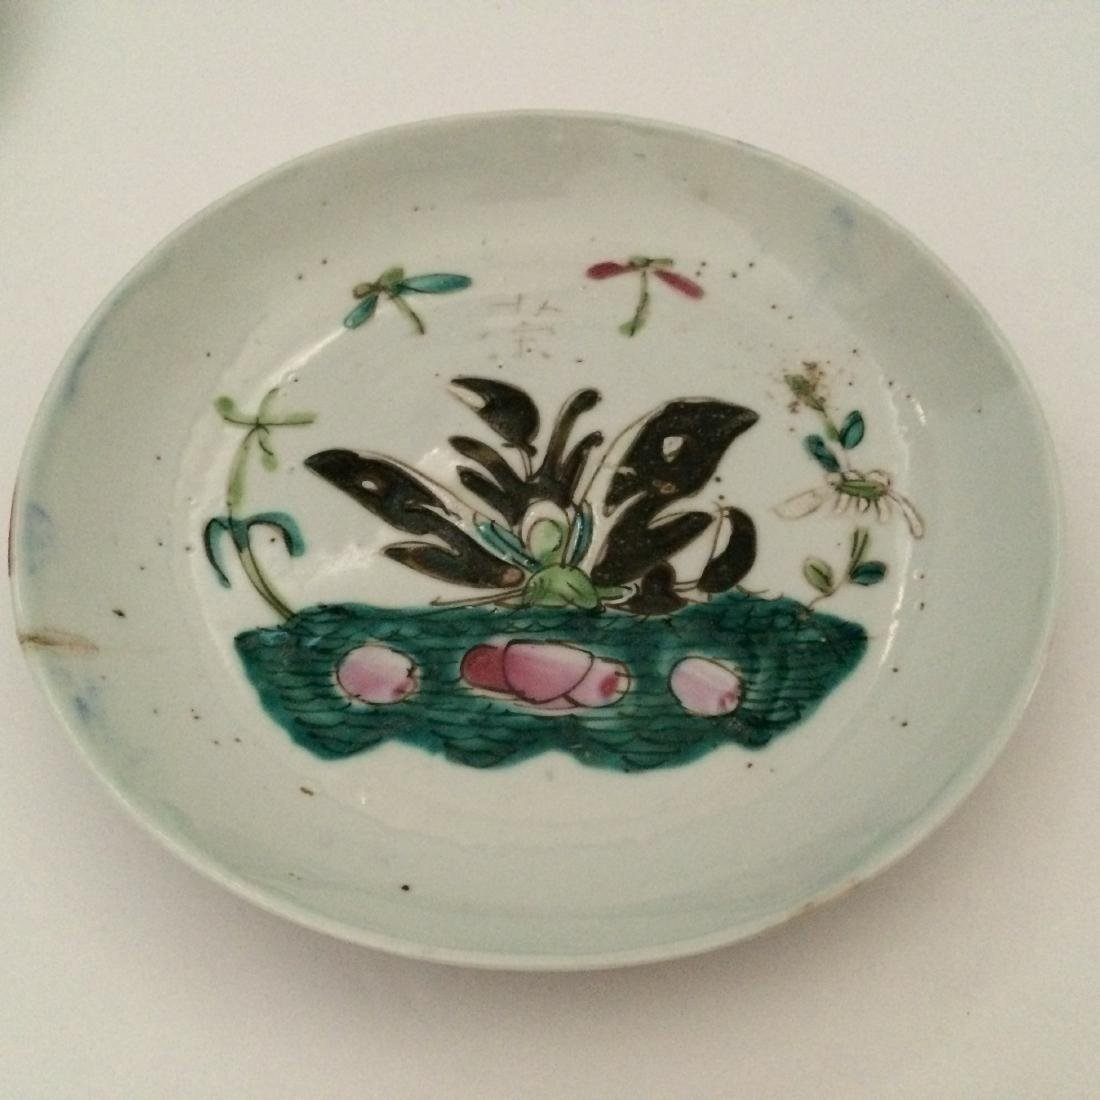 Chinese Chin Dynasty Porcelain Plates Butterfly Design - 3